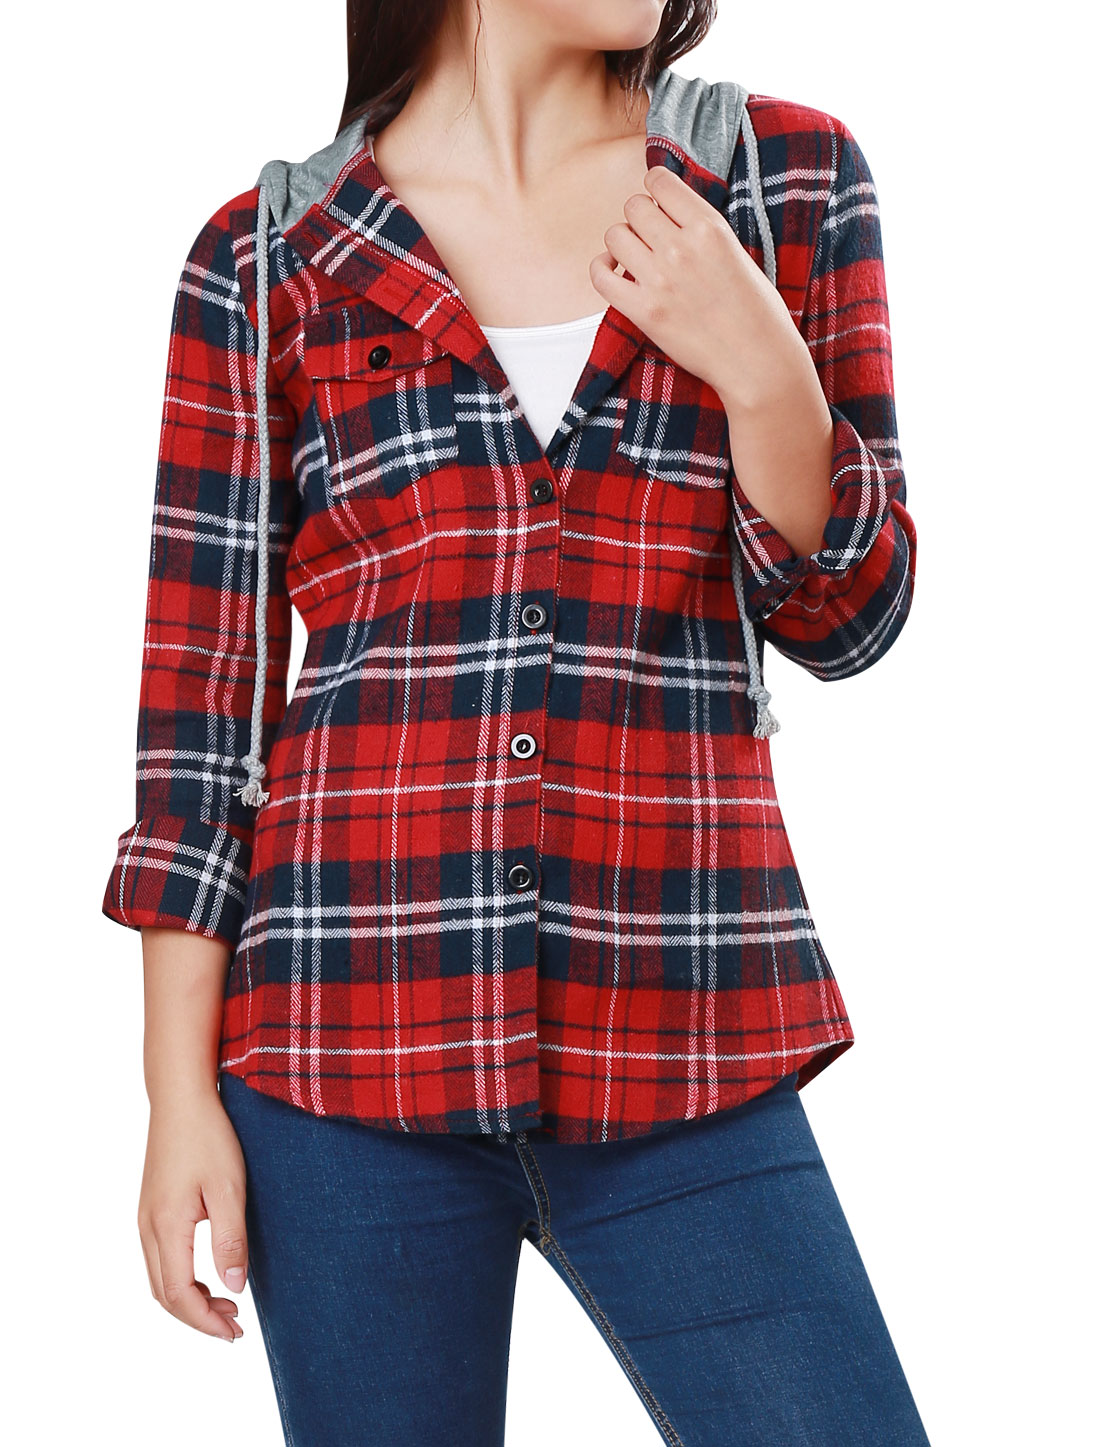 Woman Flap Patch Pockets Hooded Plaid Top Red S